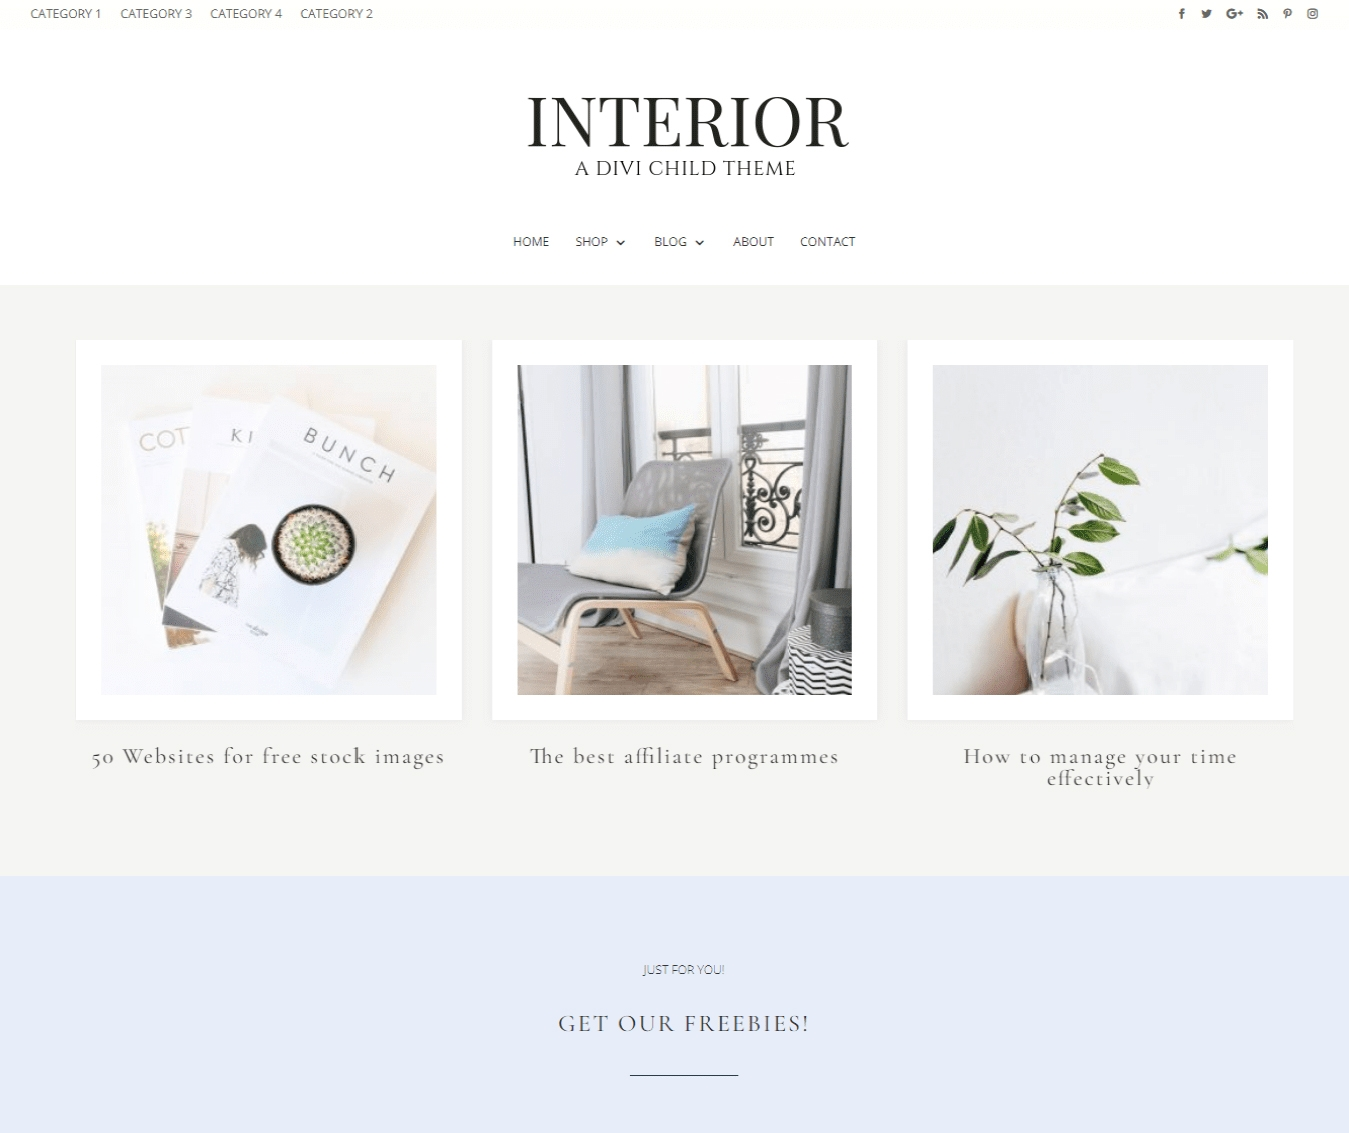 Interior is perfect for social media experts, bloggers and those that want to make a statement with their blog.